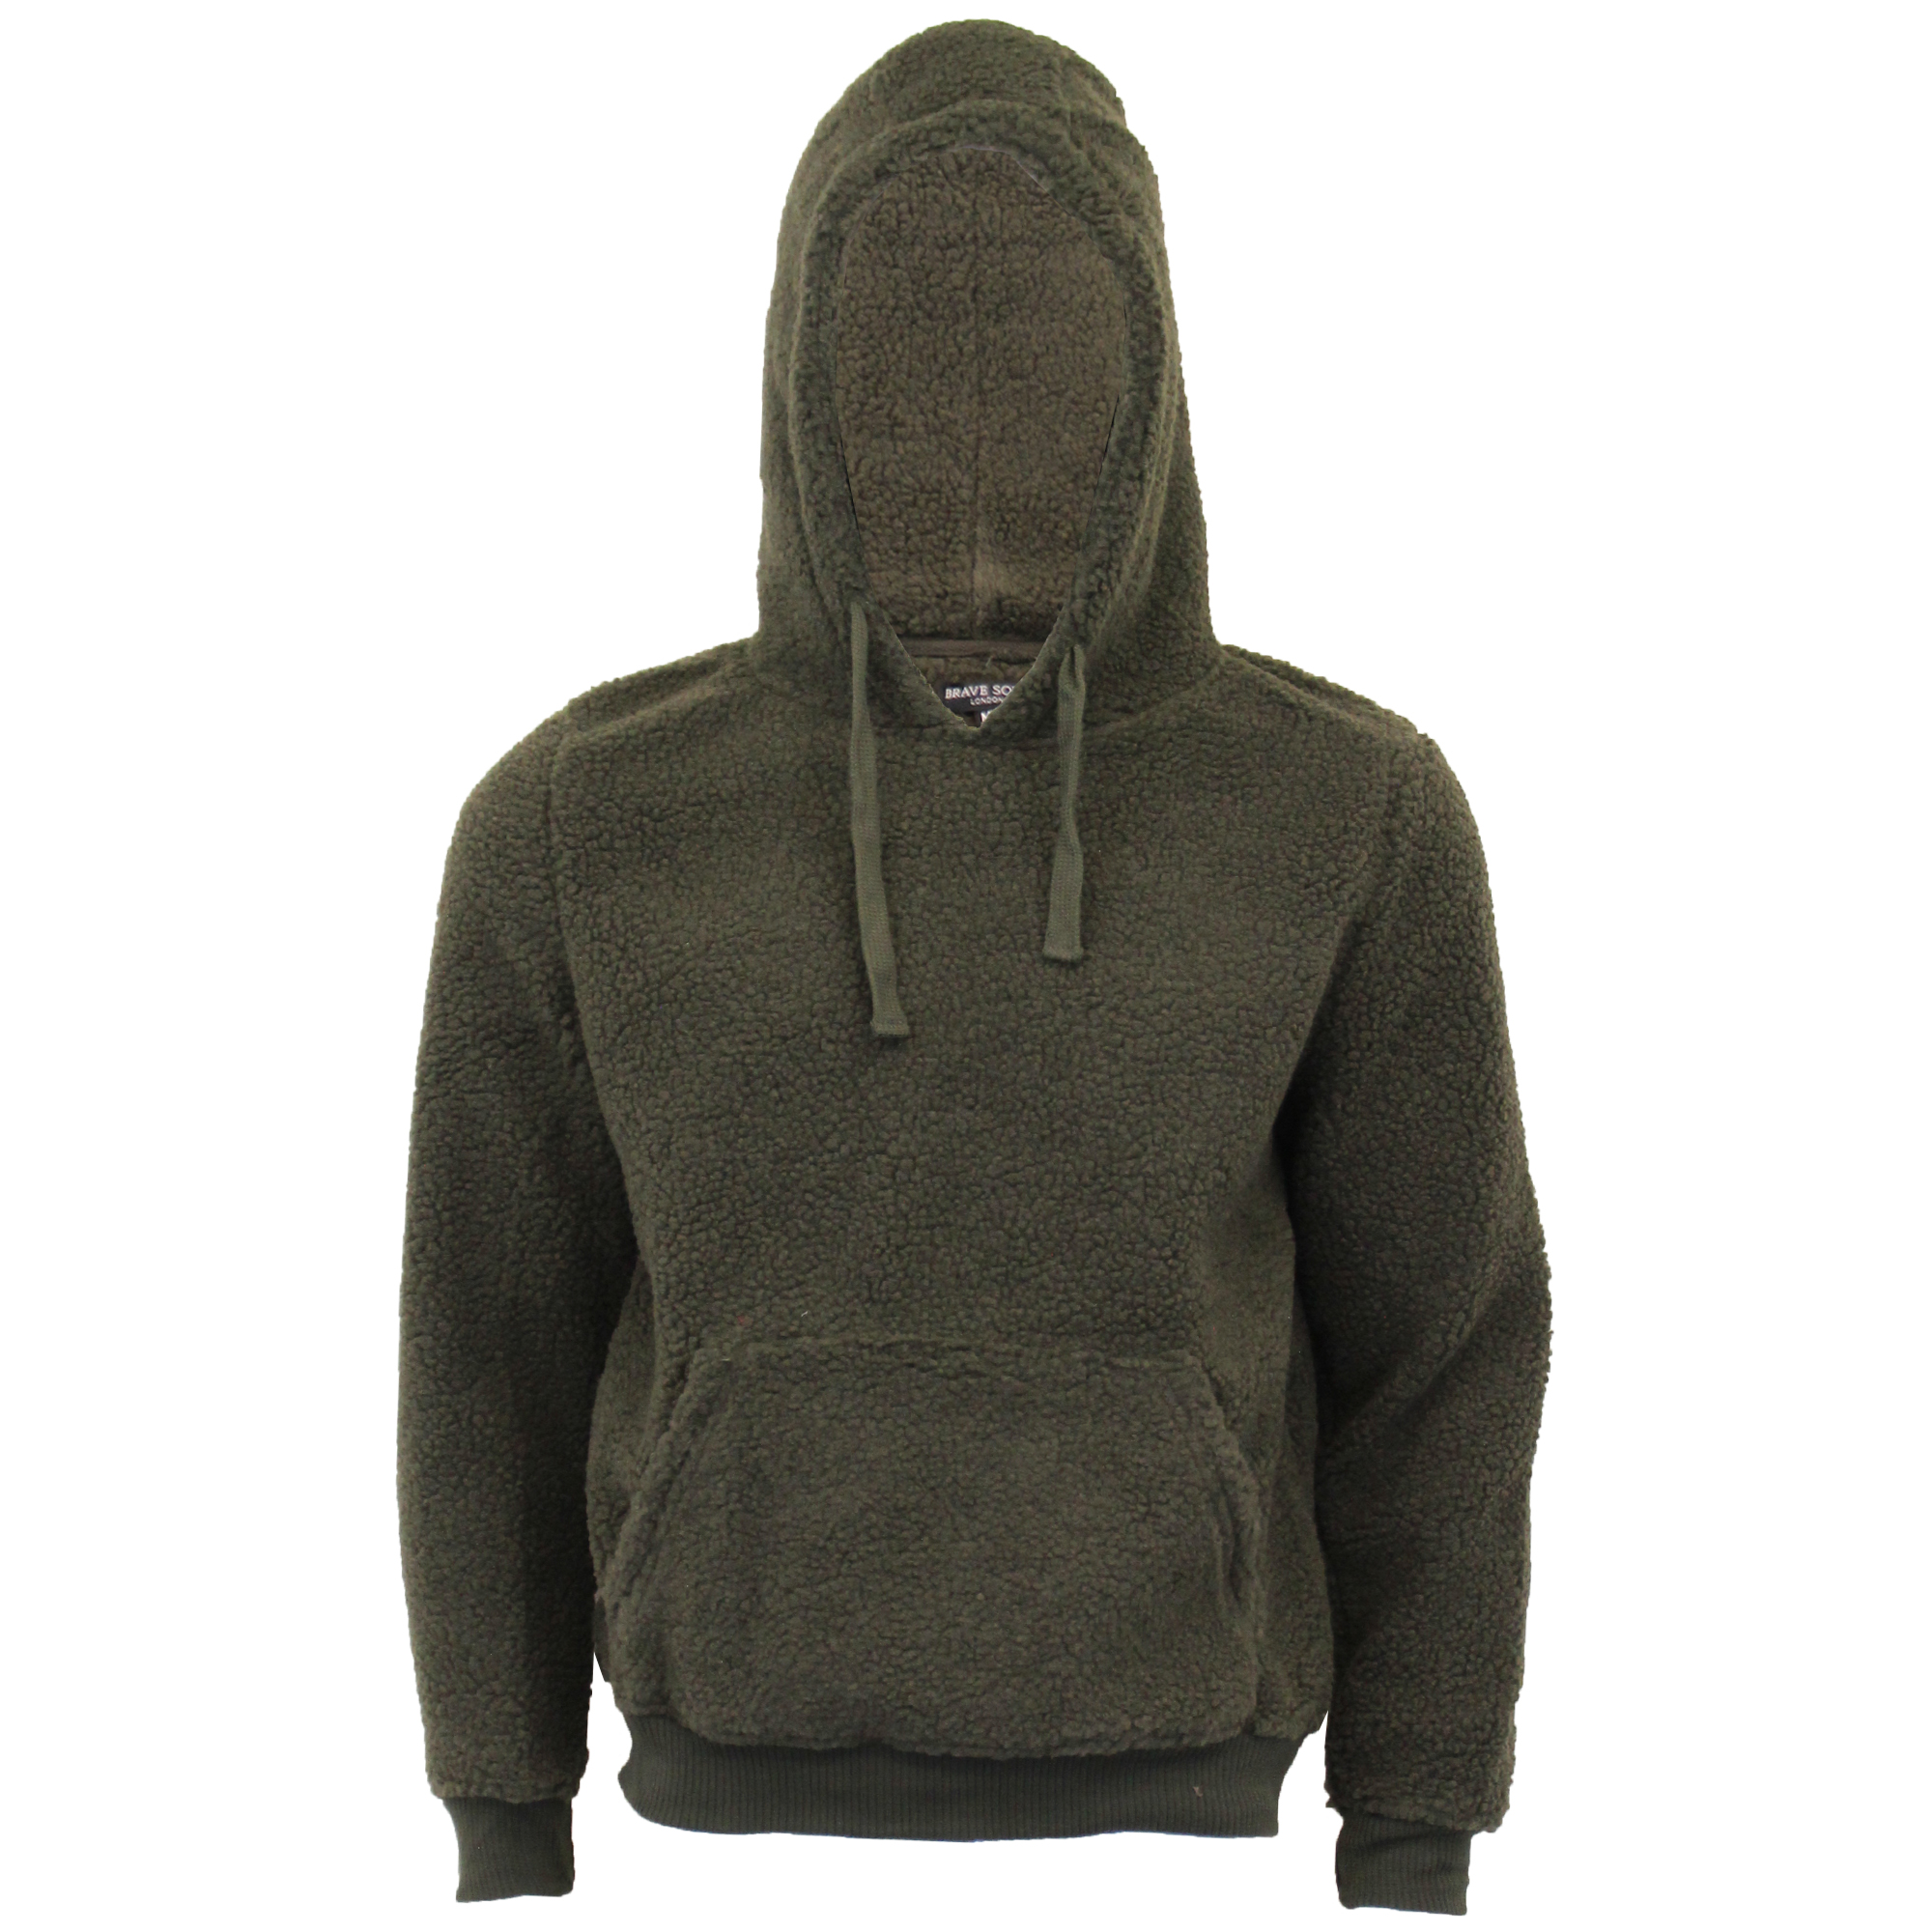 Mens-Sherpa-Fleece-Borg-Sweatshirt-Brave-Soul-Over-The-Head-GROMIT-Hooded-Top thumbnail 7